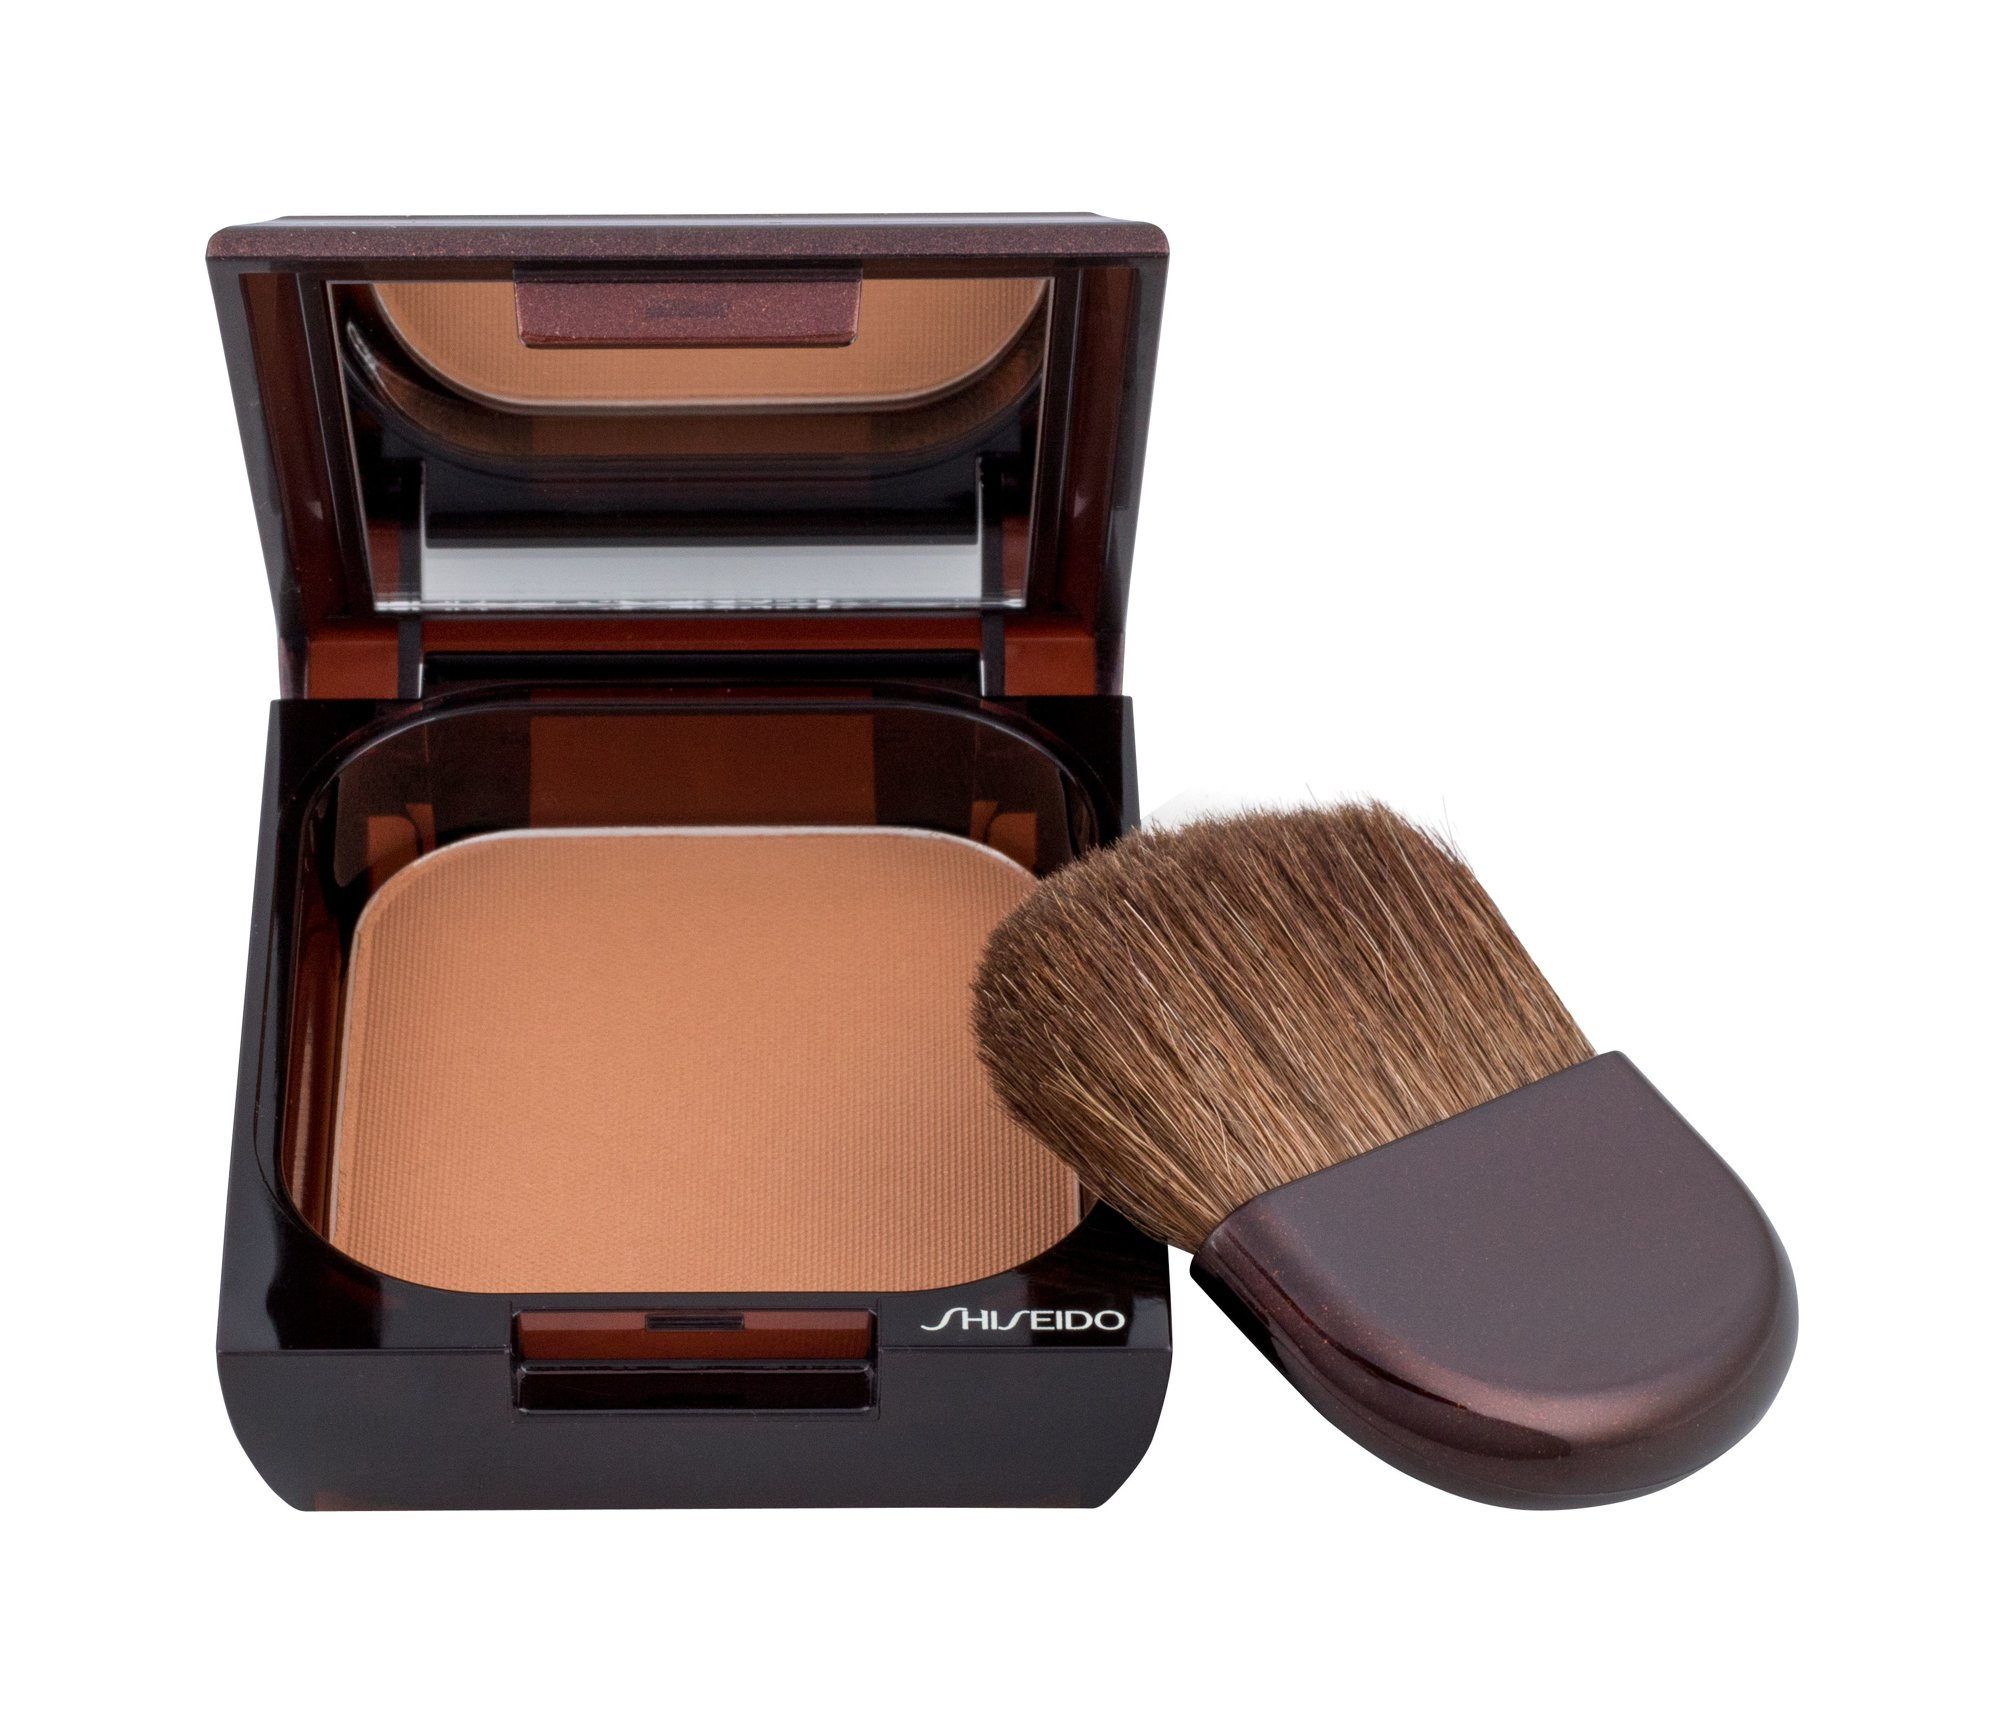 Shiseido Bronzer Cosmetic 12ml 1 Light